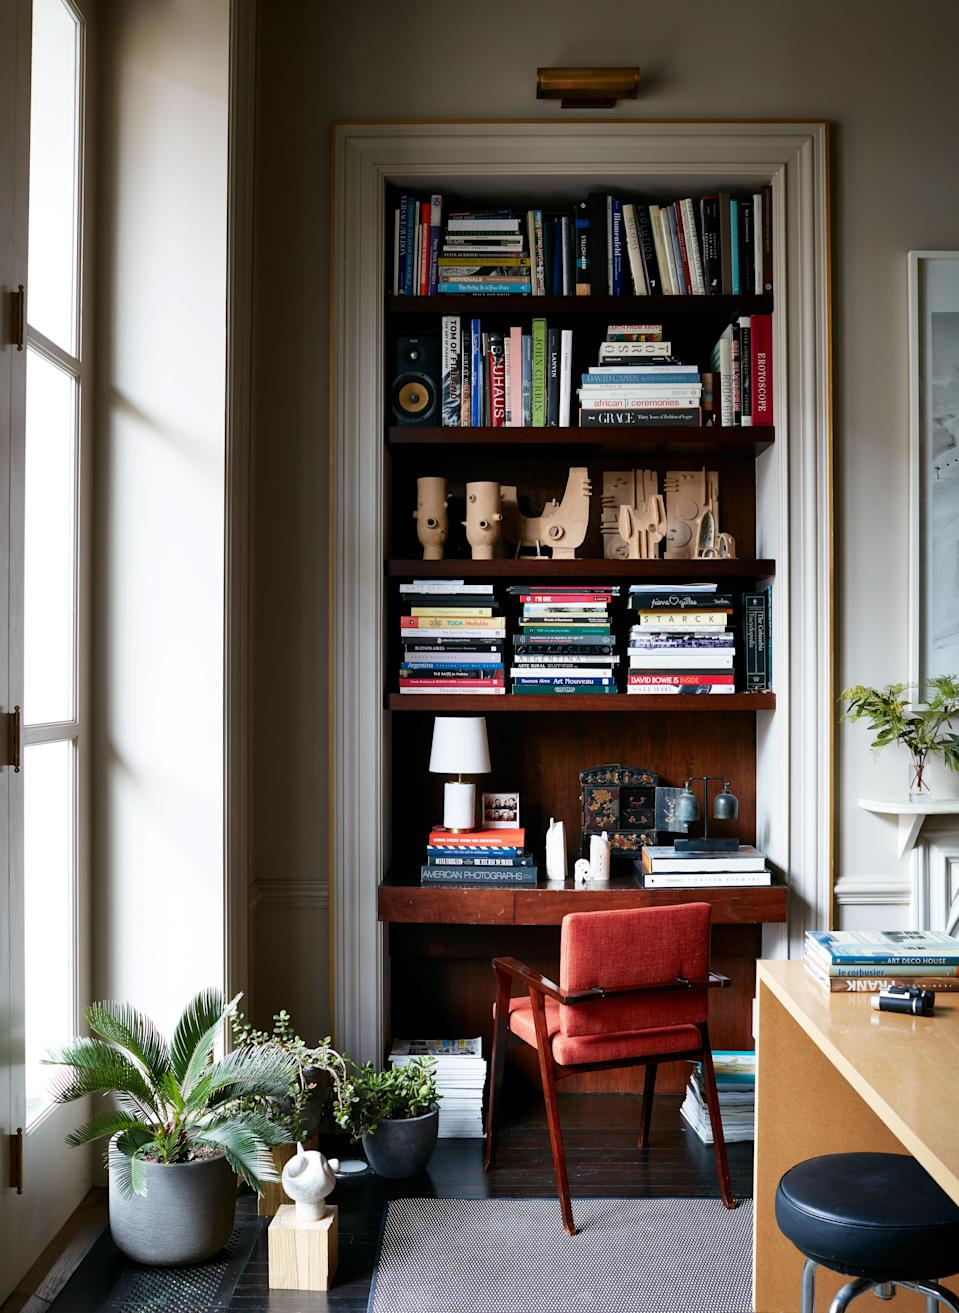 The picture light above the bookcase is a Thomas O'Brien David in brass by Visual Comfort. The study's 1950s rosewood chairs were reupholstered in red-orange linen from Gaston y Daniela at Kravet.